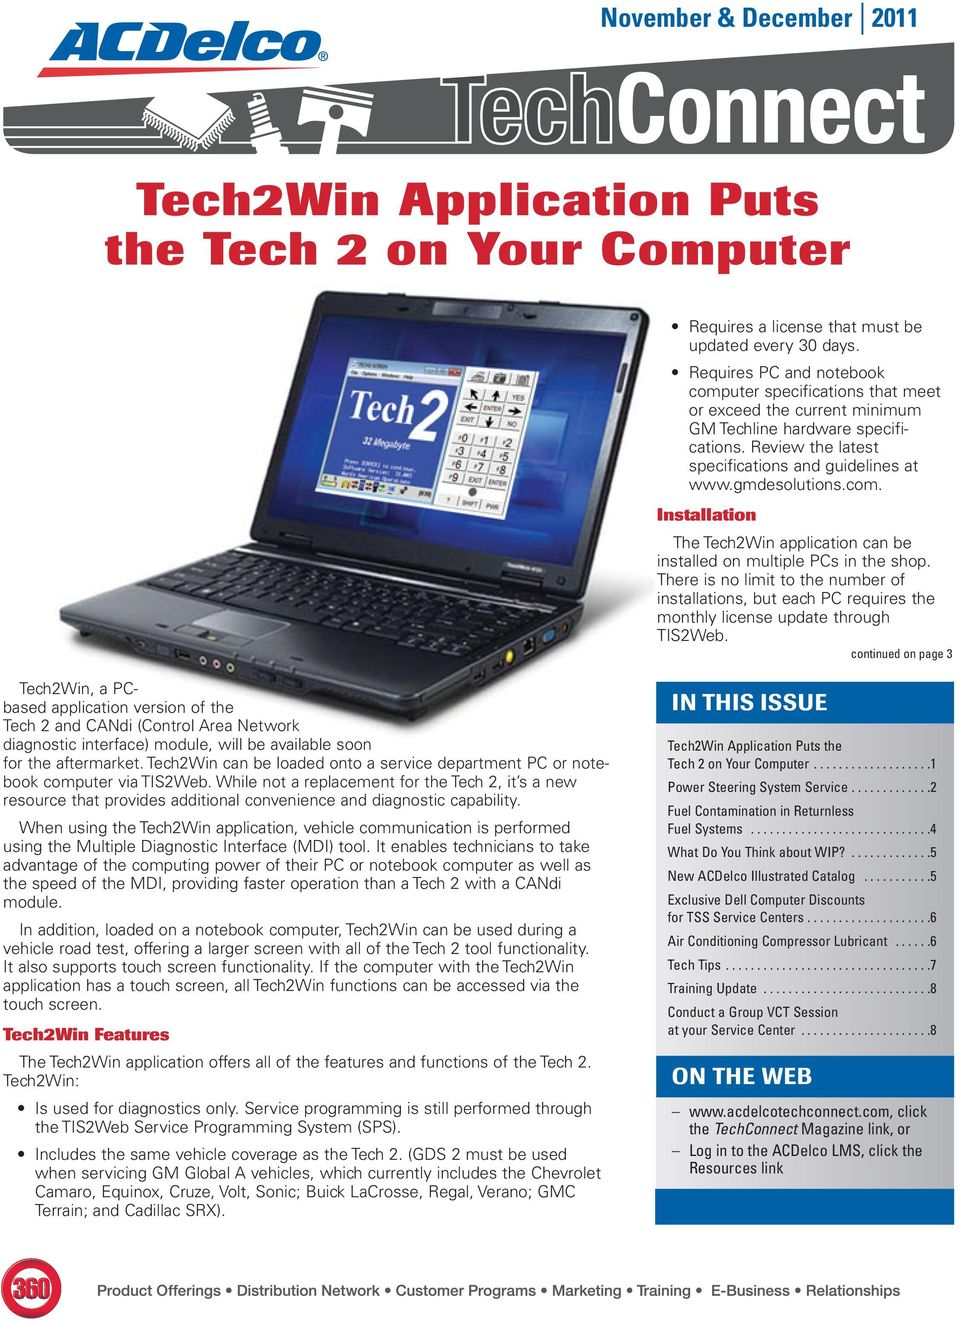 Tech2Win Application Puts the Tech 2 on Your Computer - PDF